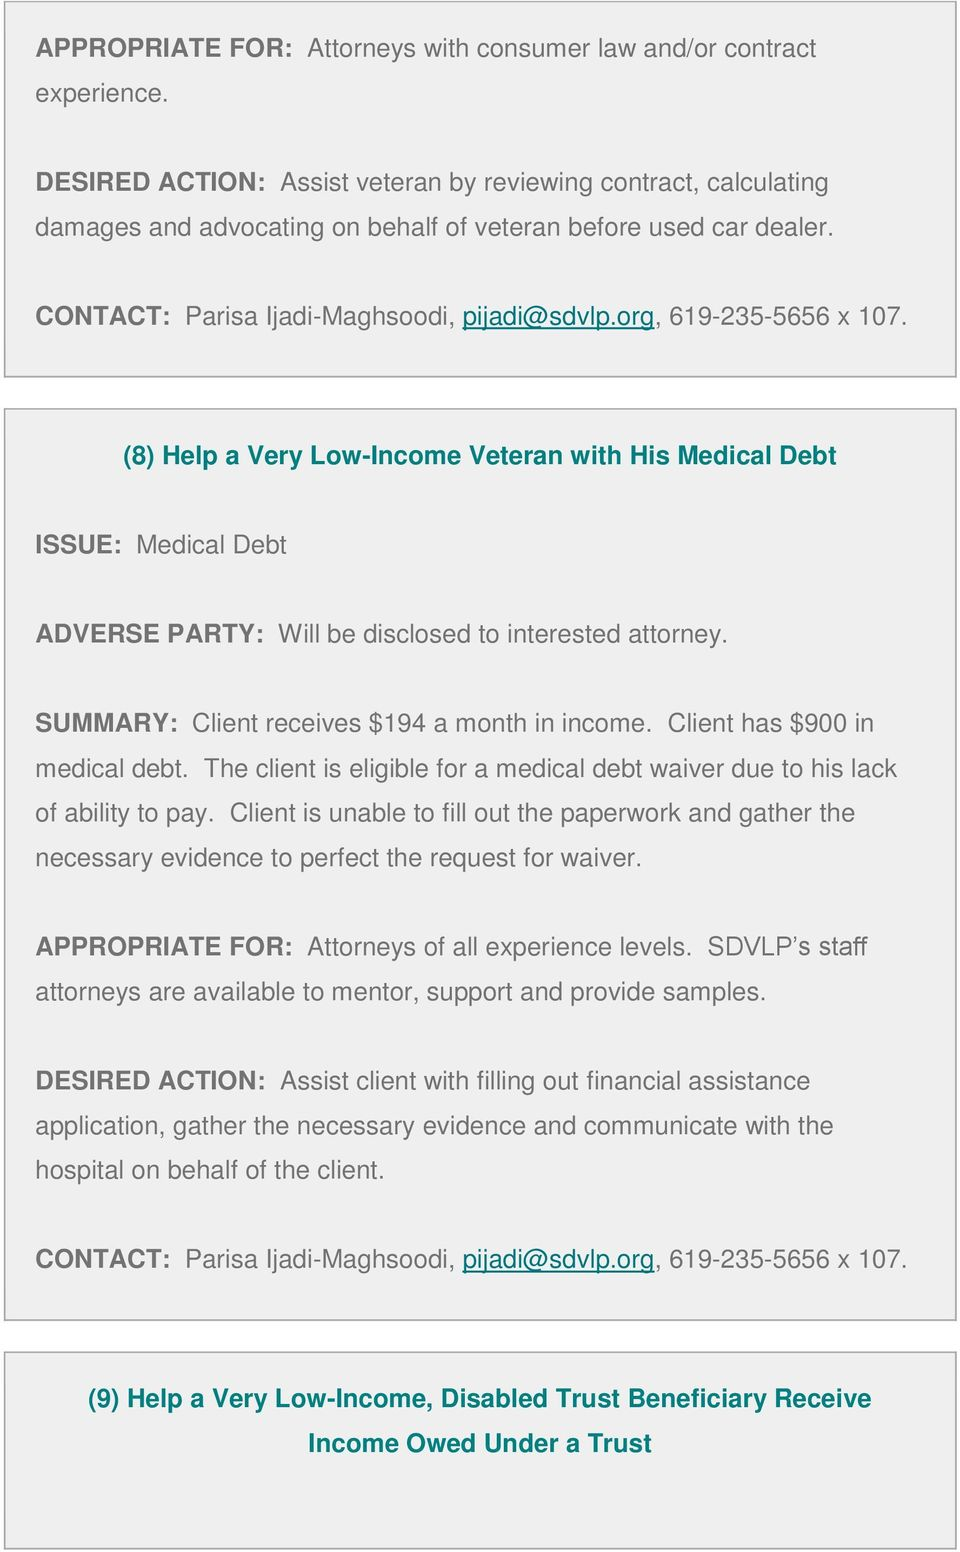 (8) Help a Very Low-Income Veteran with His Medical Debt ISSUE: Medical Debt ADVERSE PARTY: Will be disclosed to interested attorney. SUMMARY: Client receives $194 a month in income.